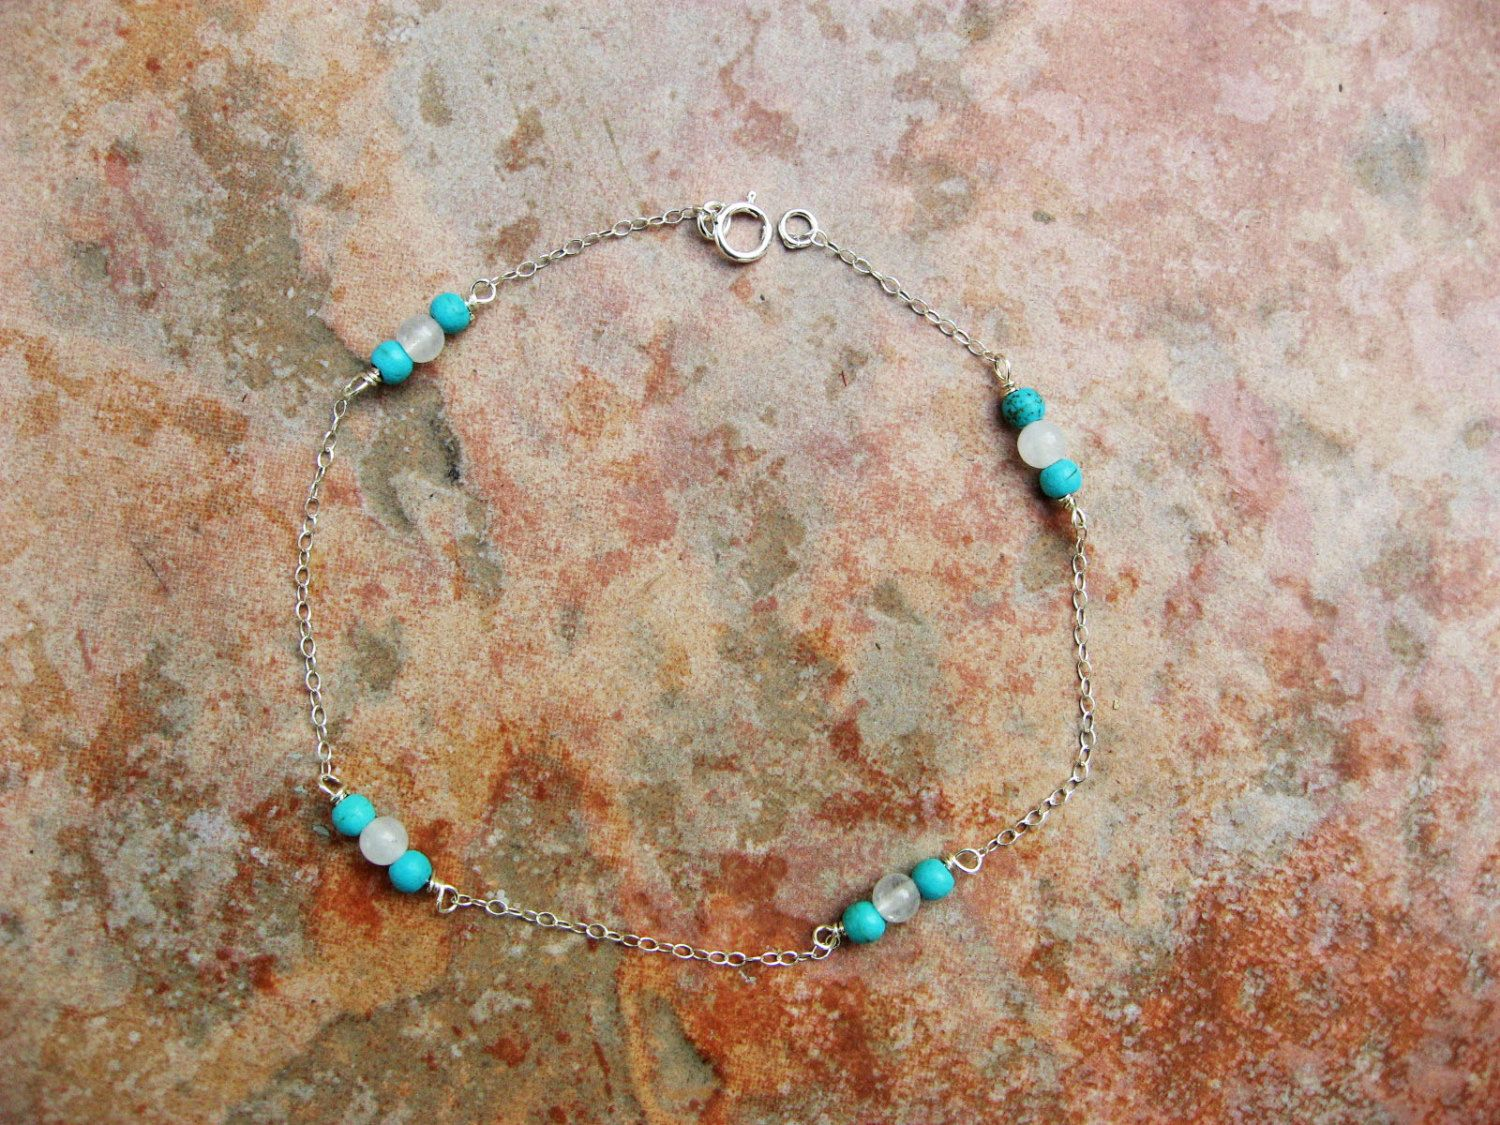 shipping bracelets free watches turquoise trends india product sterling today anklet overstock silver jewelry handmade